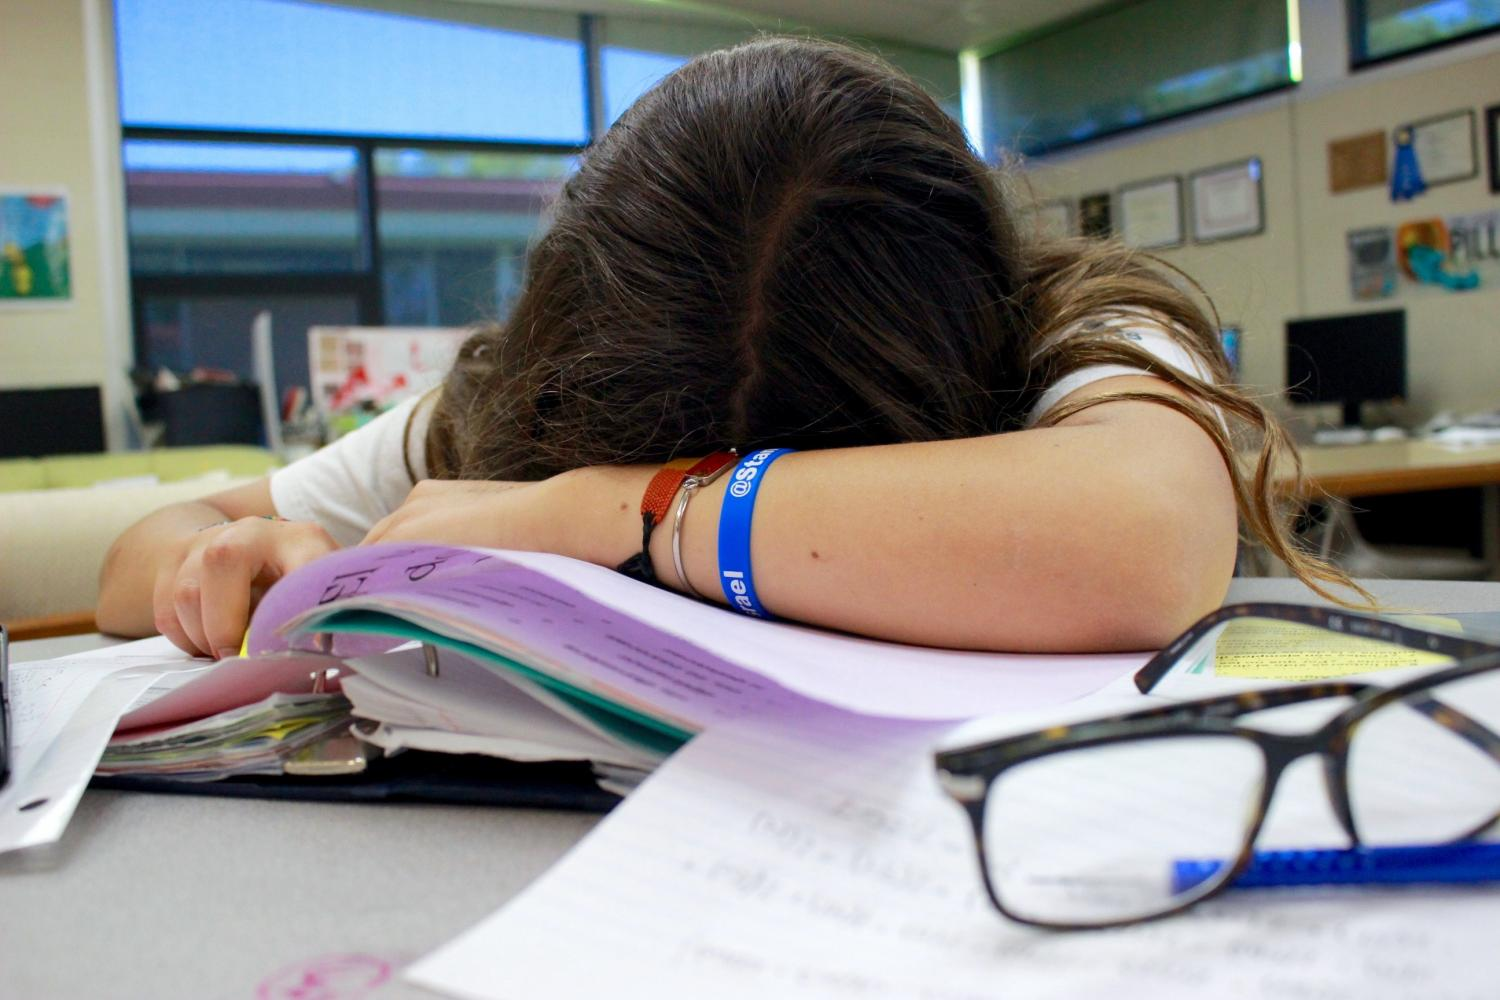 Sleep deprivation is most common in teens and can affect school performance.